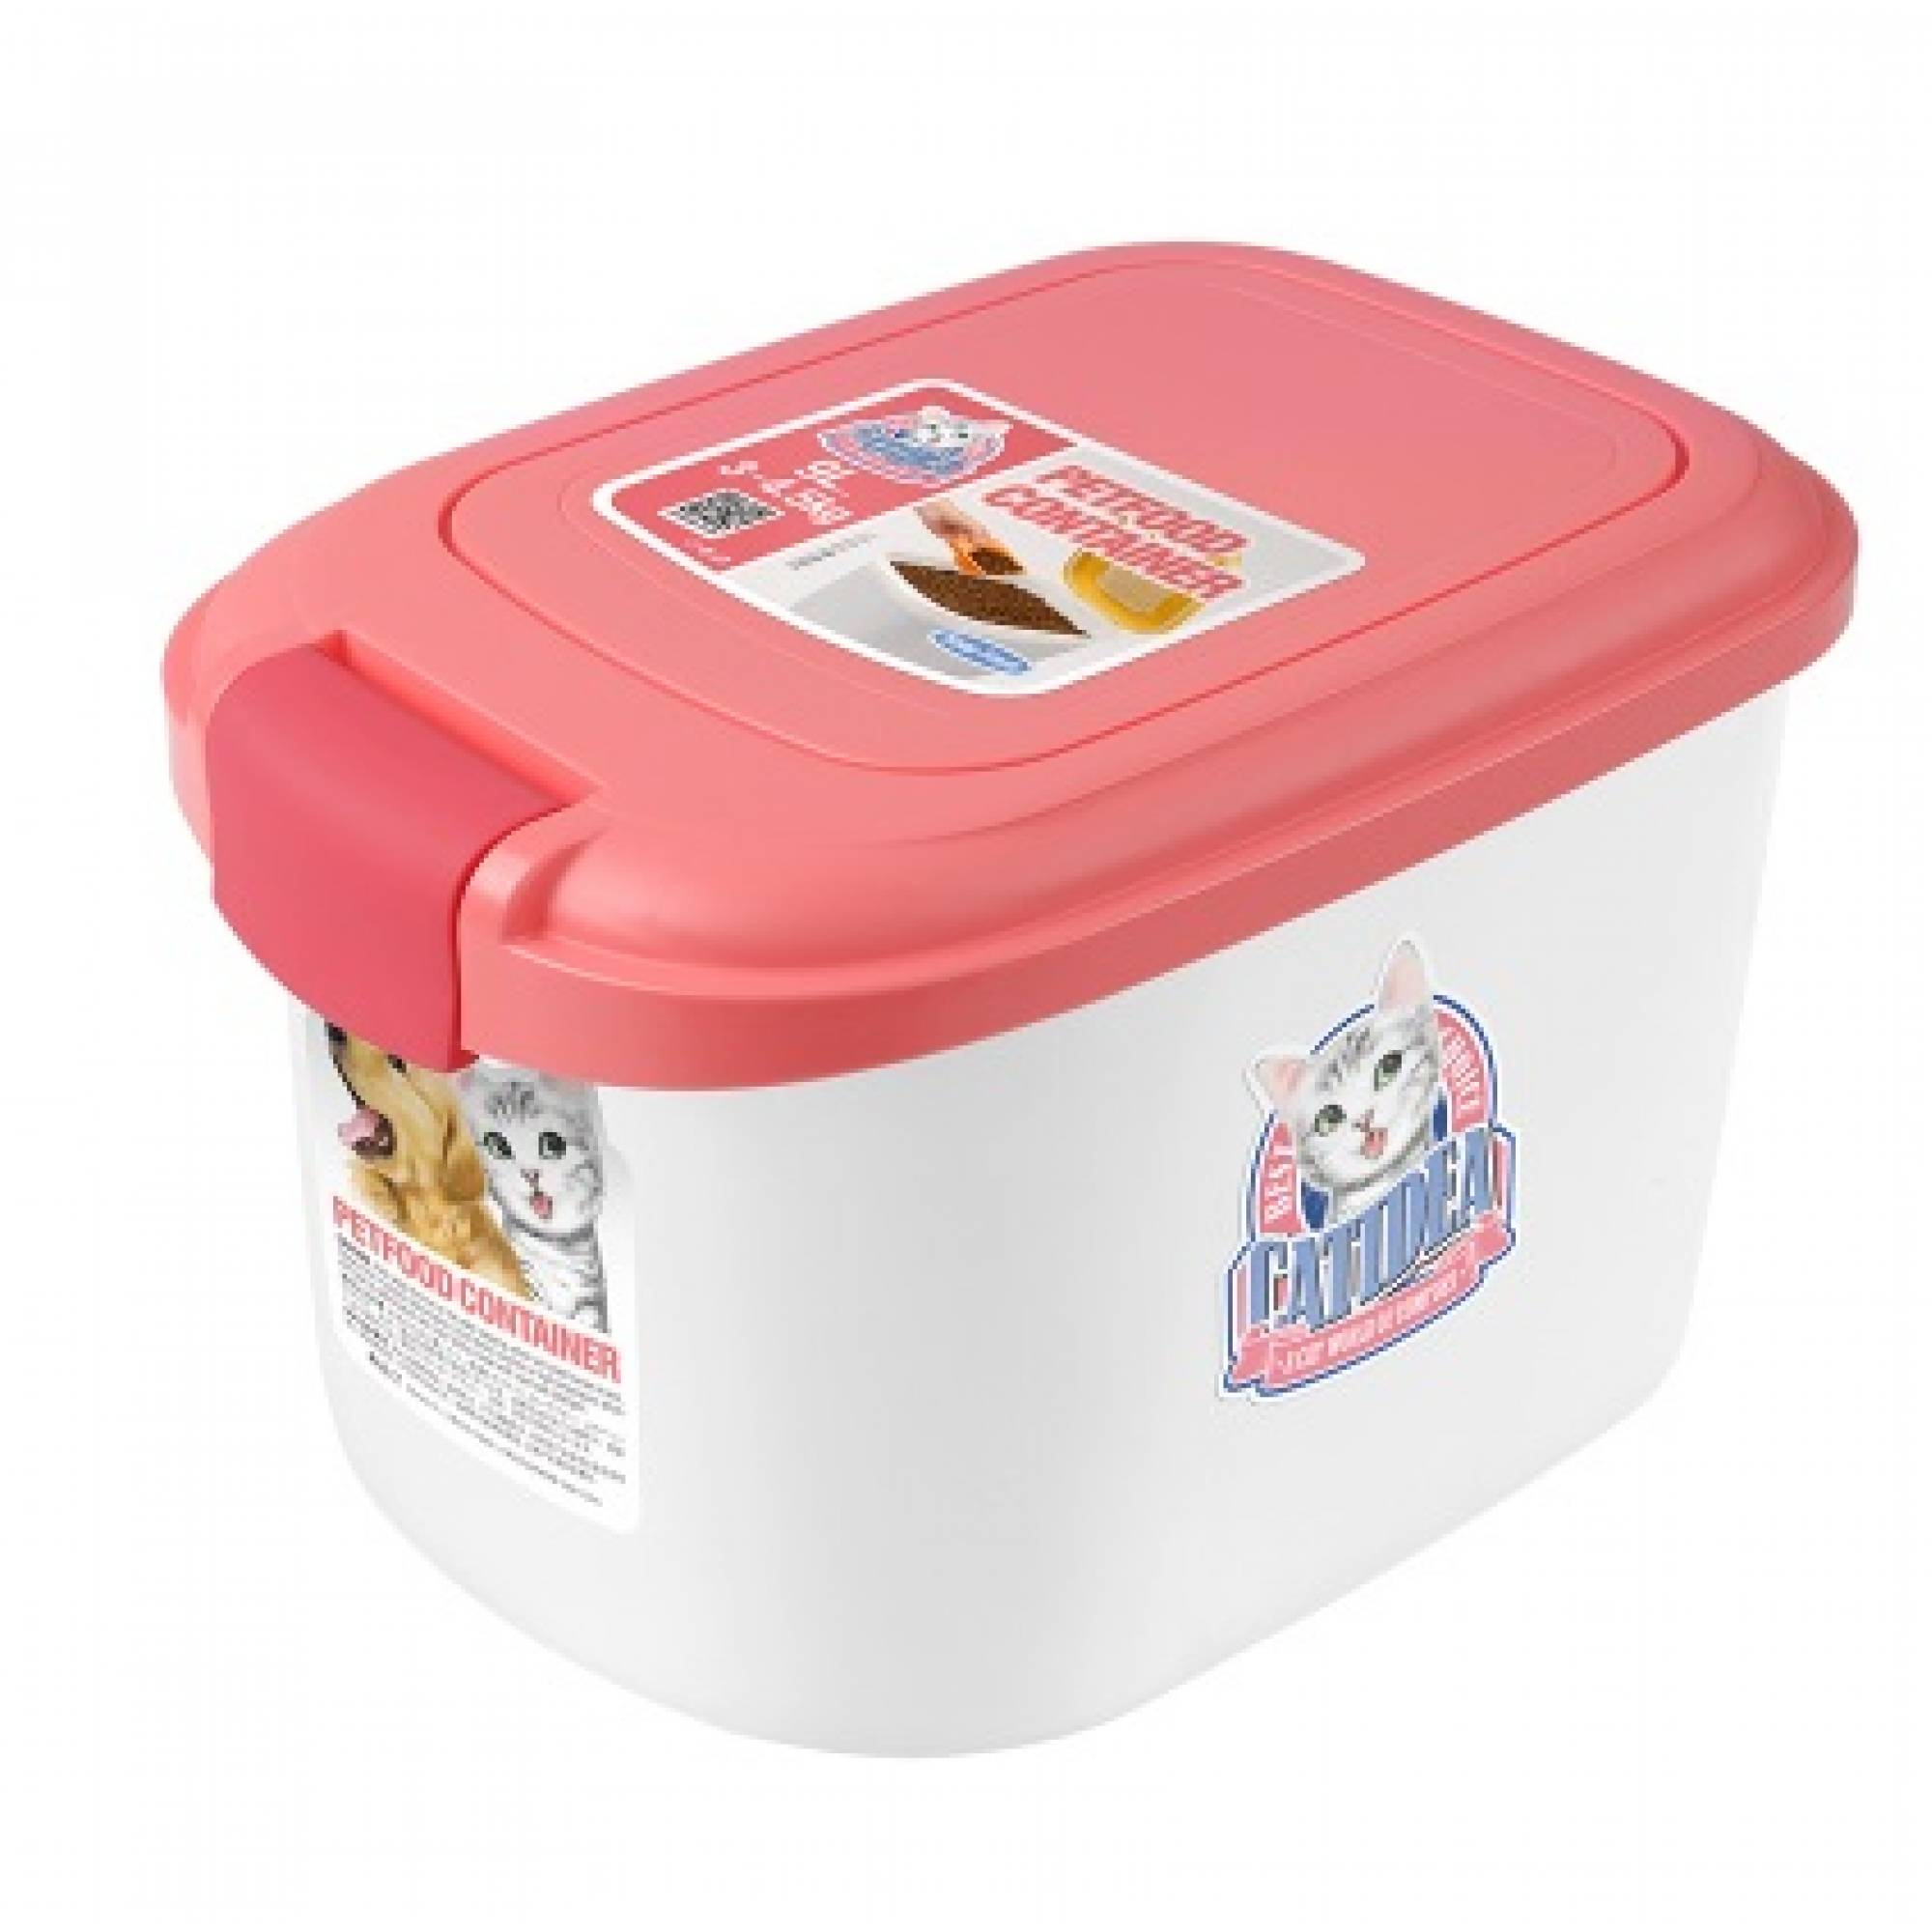 CATIDEA - CF101 Single Open Food Container - 3kg Pink